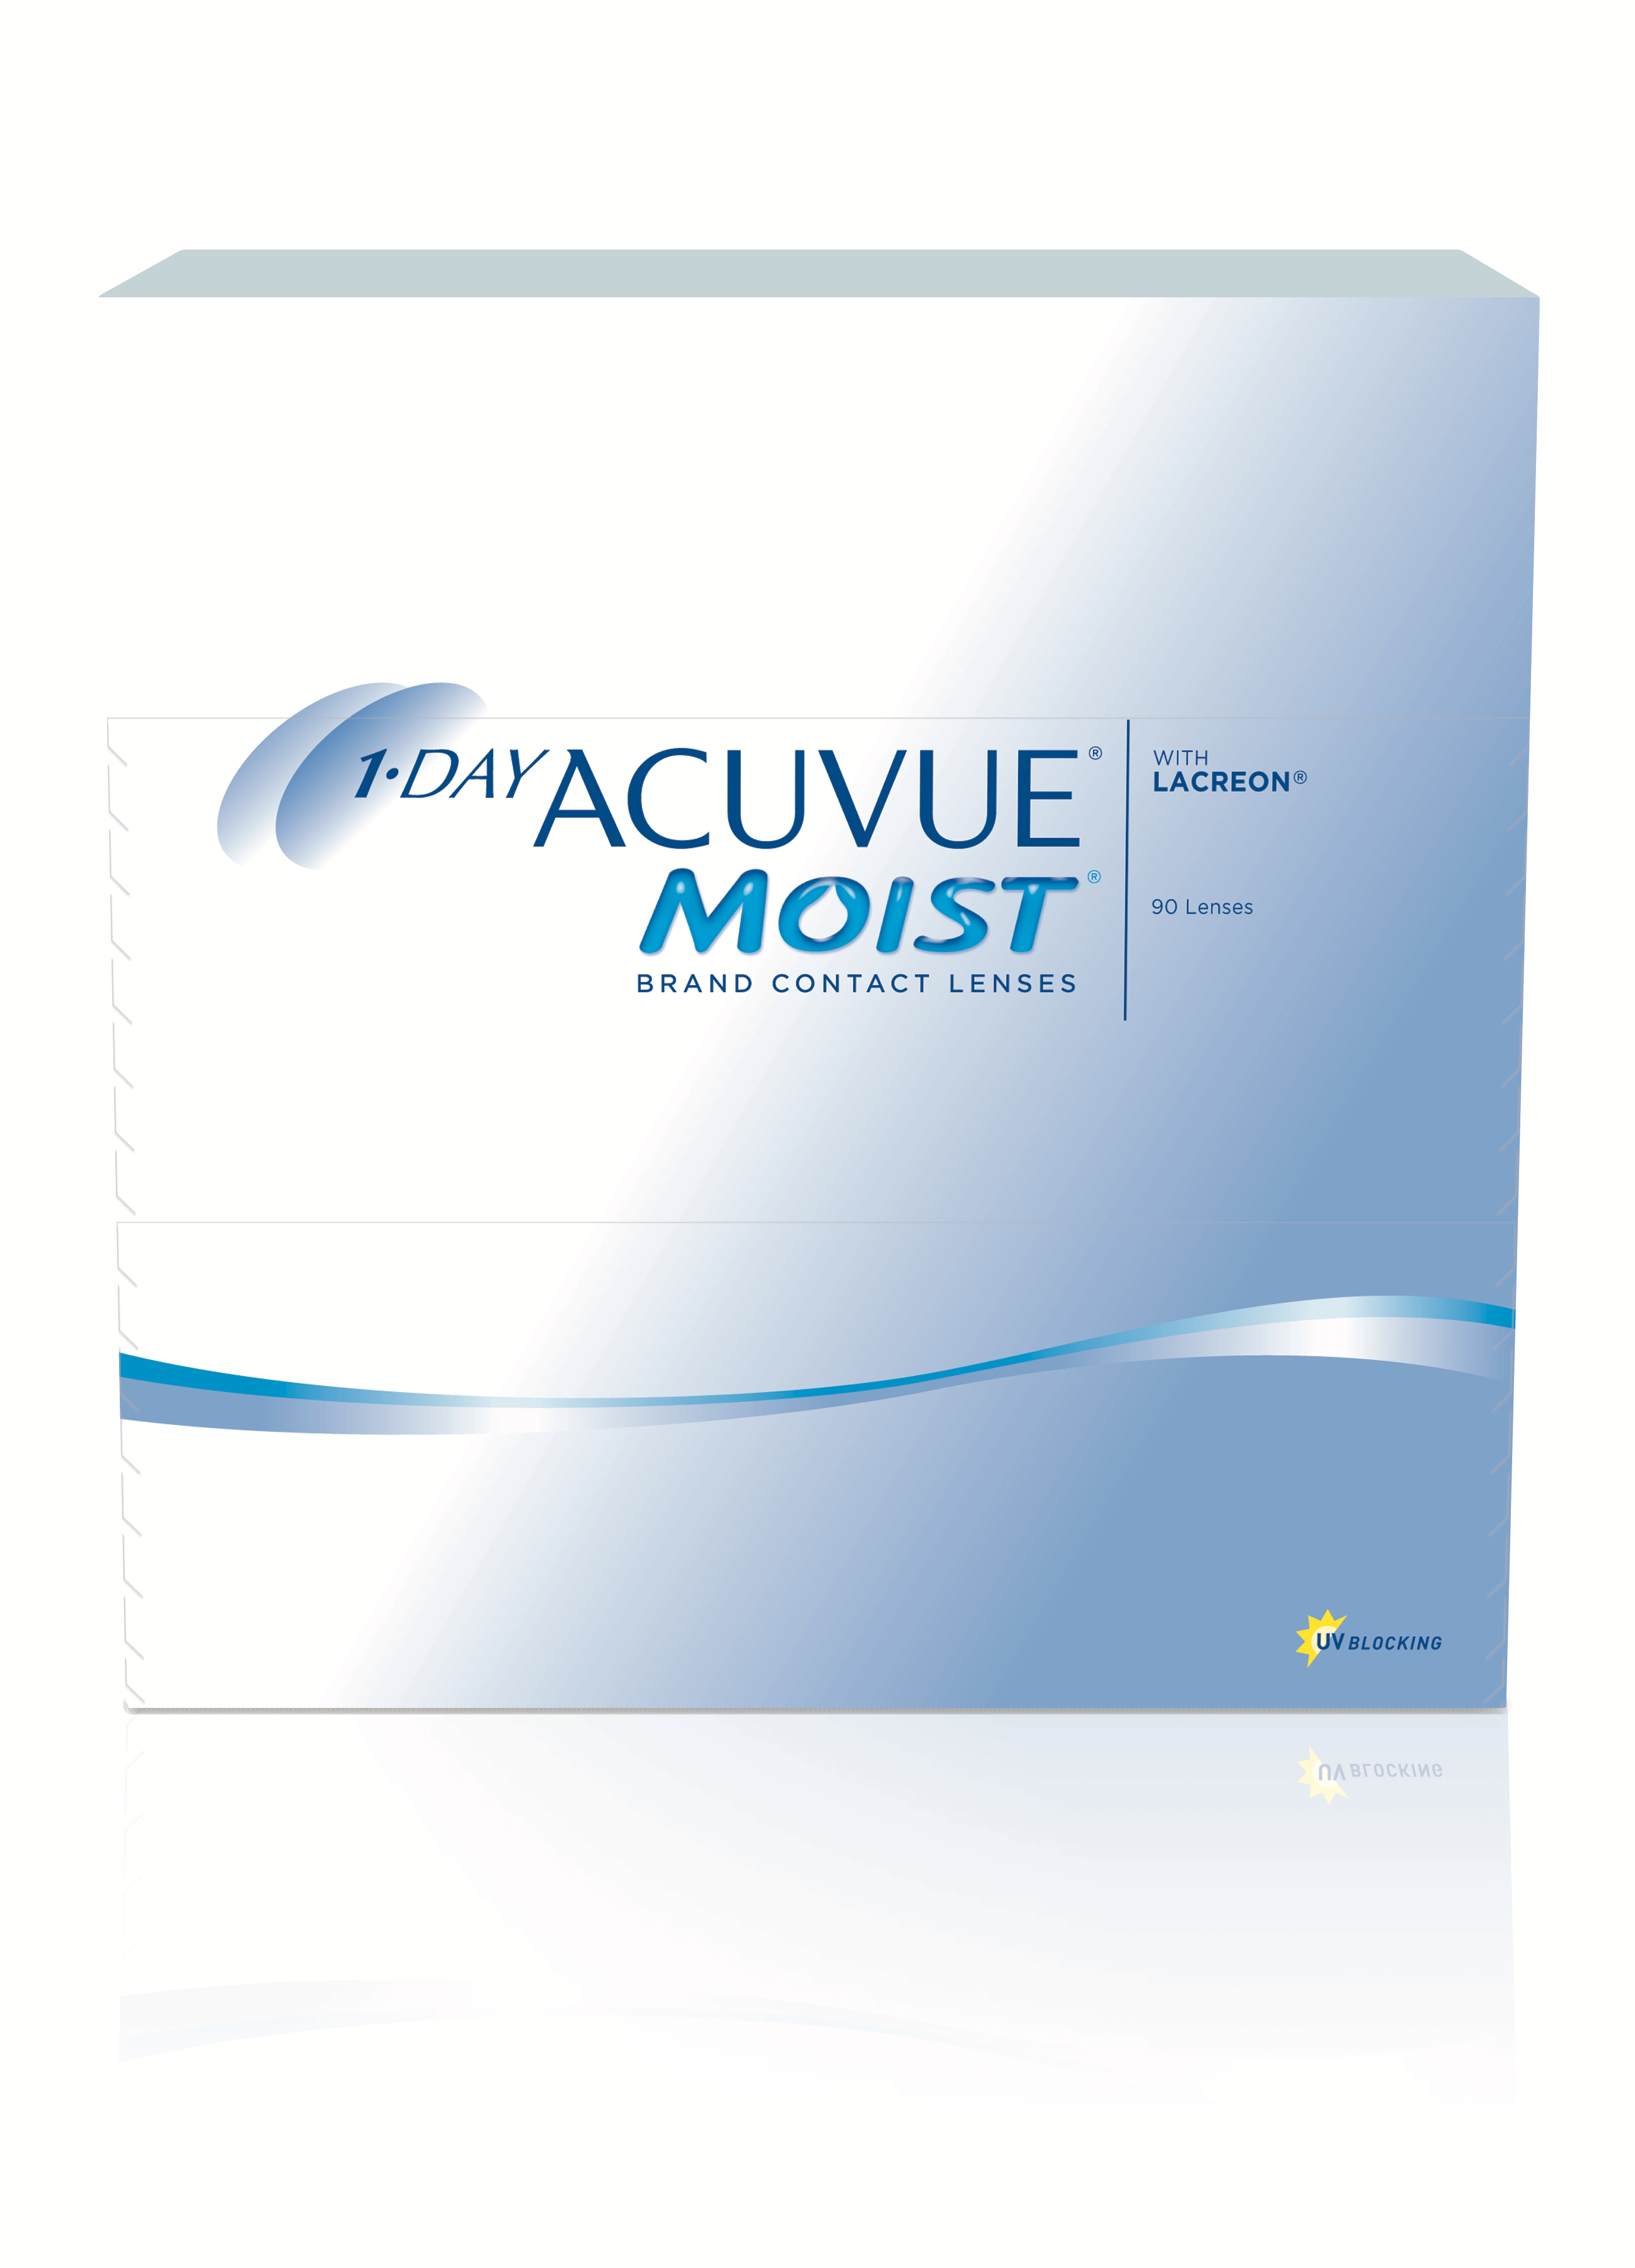 1-day-acuvue-moist-90